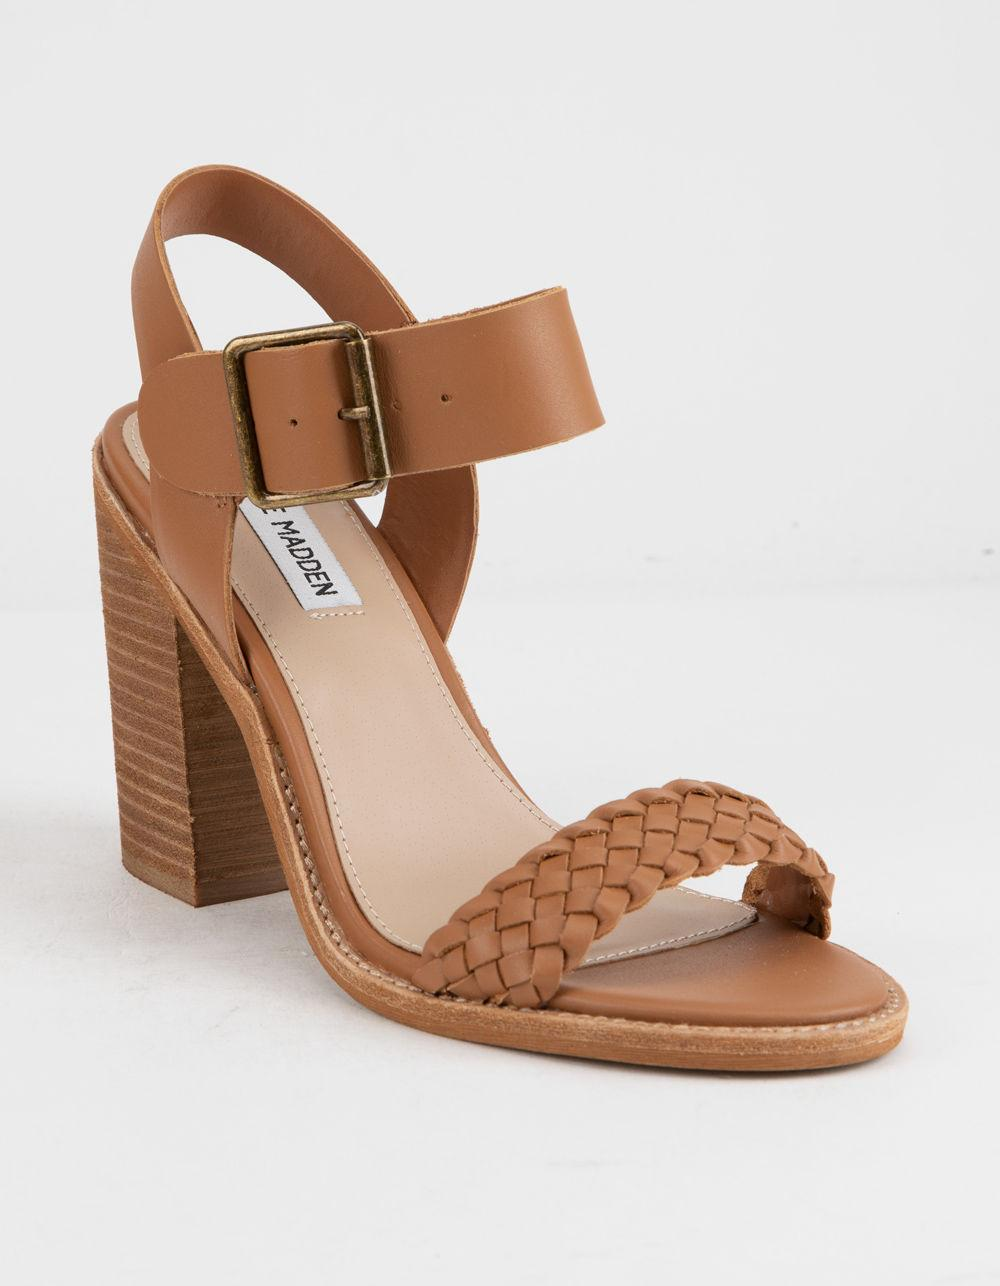 23225c3089d Lyst - Steve Madden Cadence Cognac Leather Womens Heeled Sandals in ...